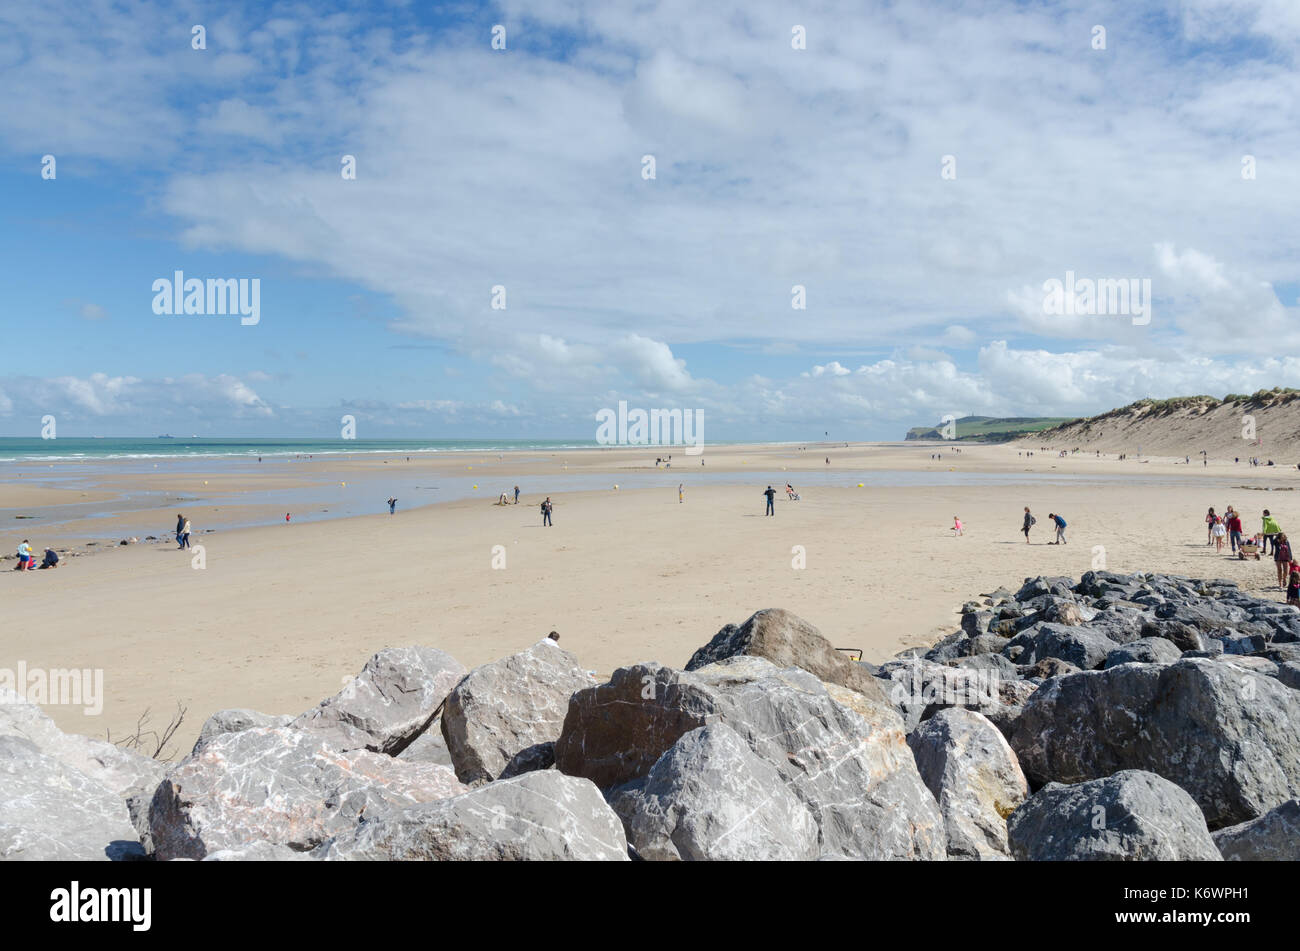 The large sandy beach at the french seaside town of Wissant in the Pas-de-Calais region of Northern France - Stock Image